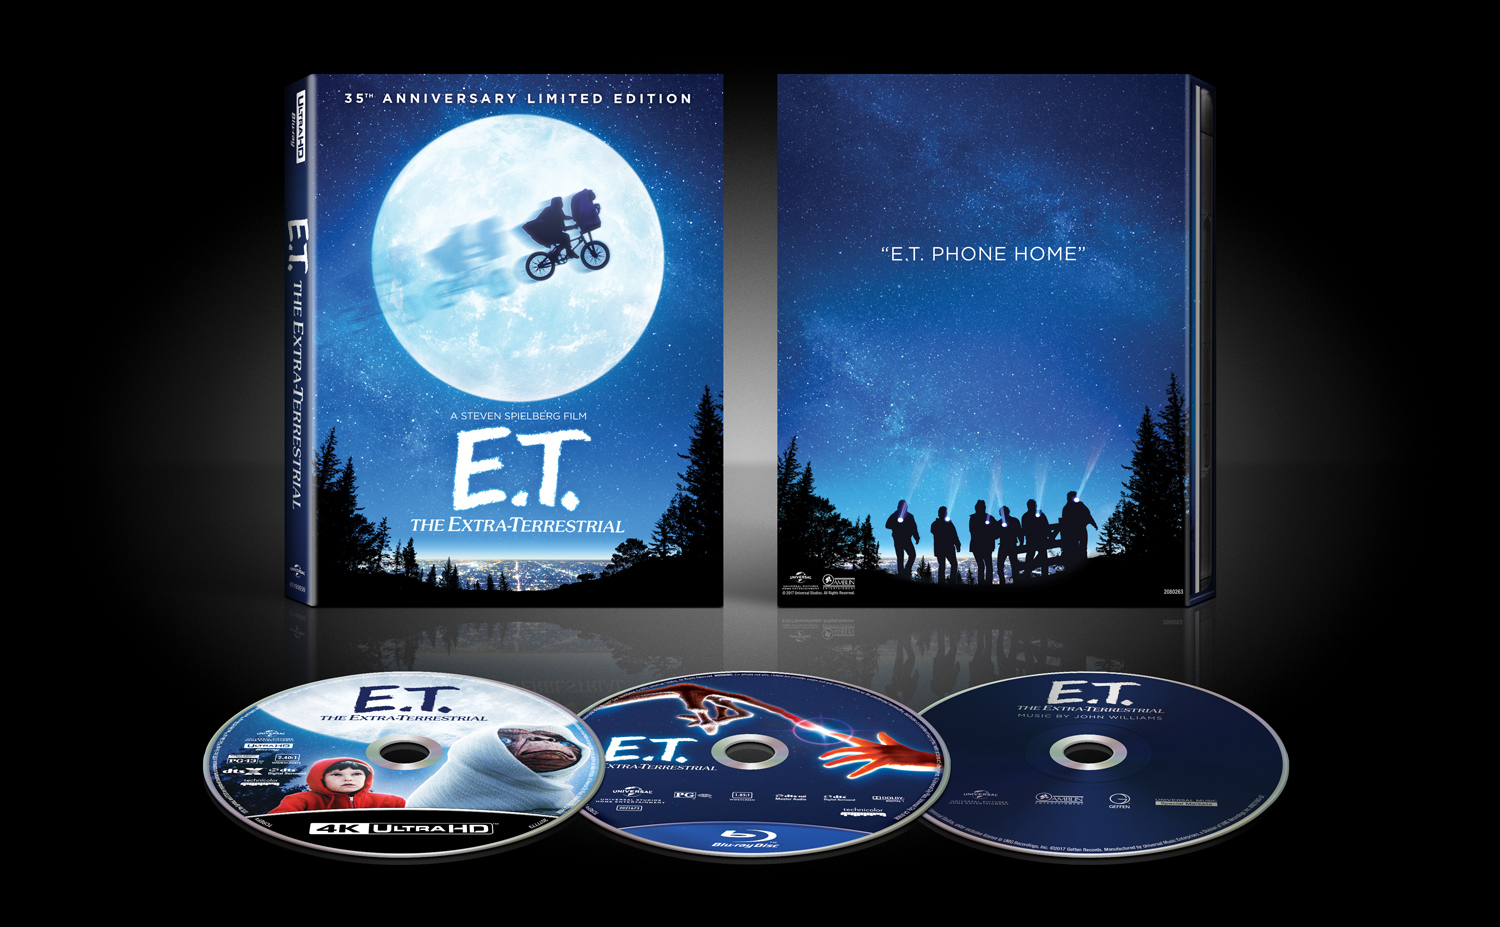 ET_35thAnniversary_Collection_02.jpg